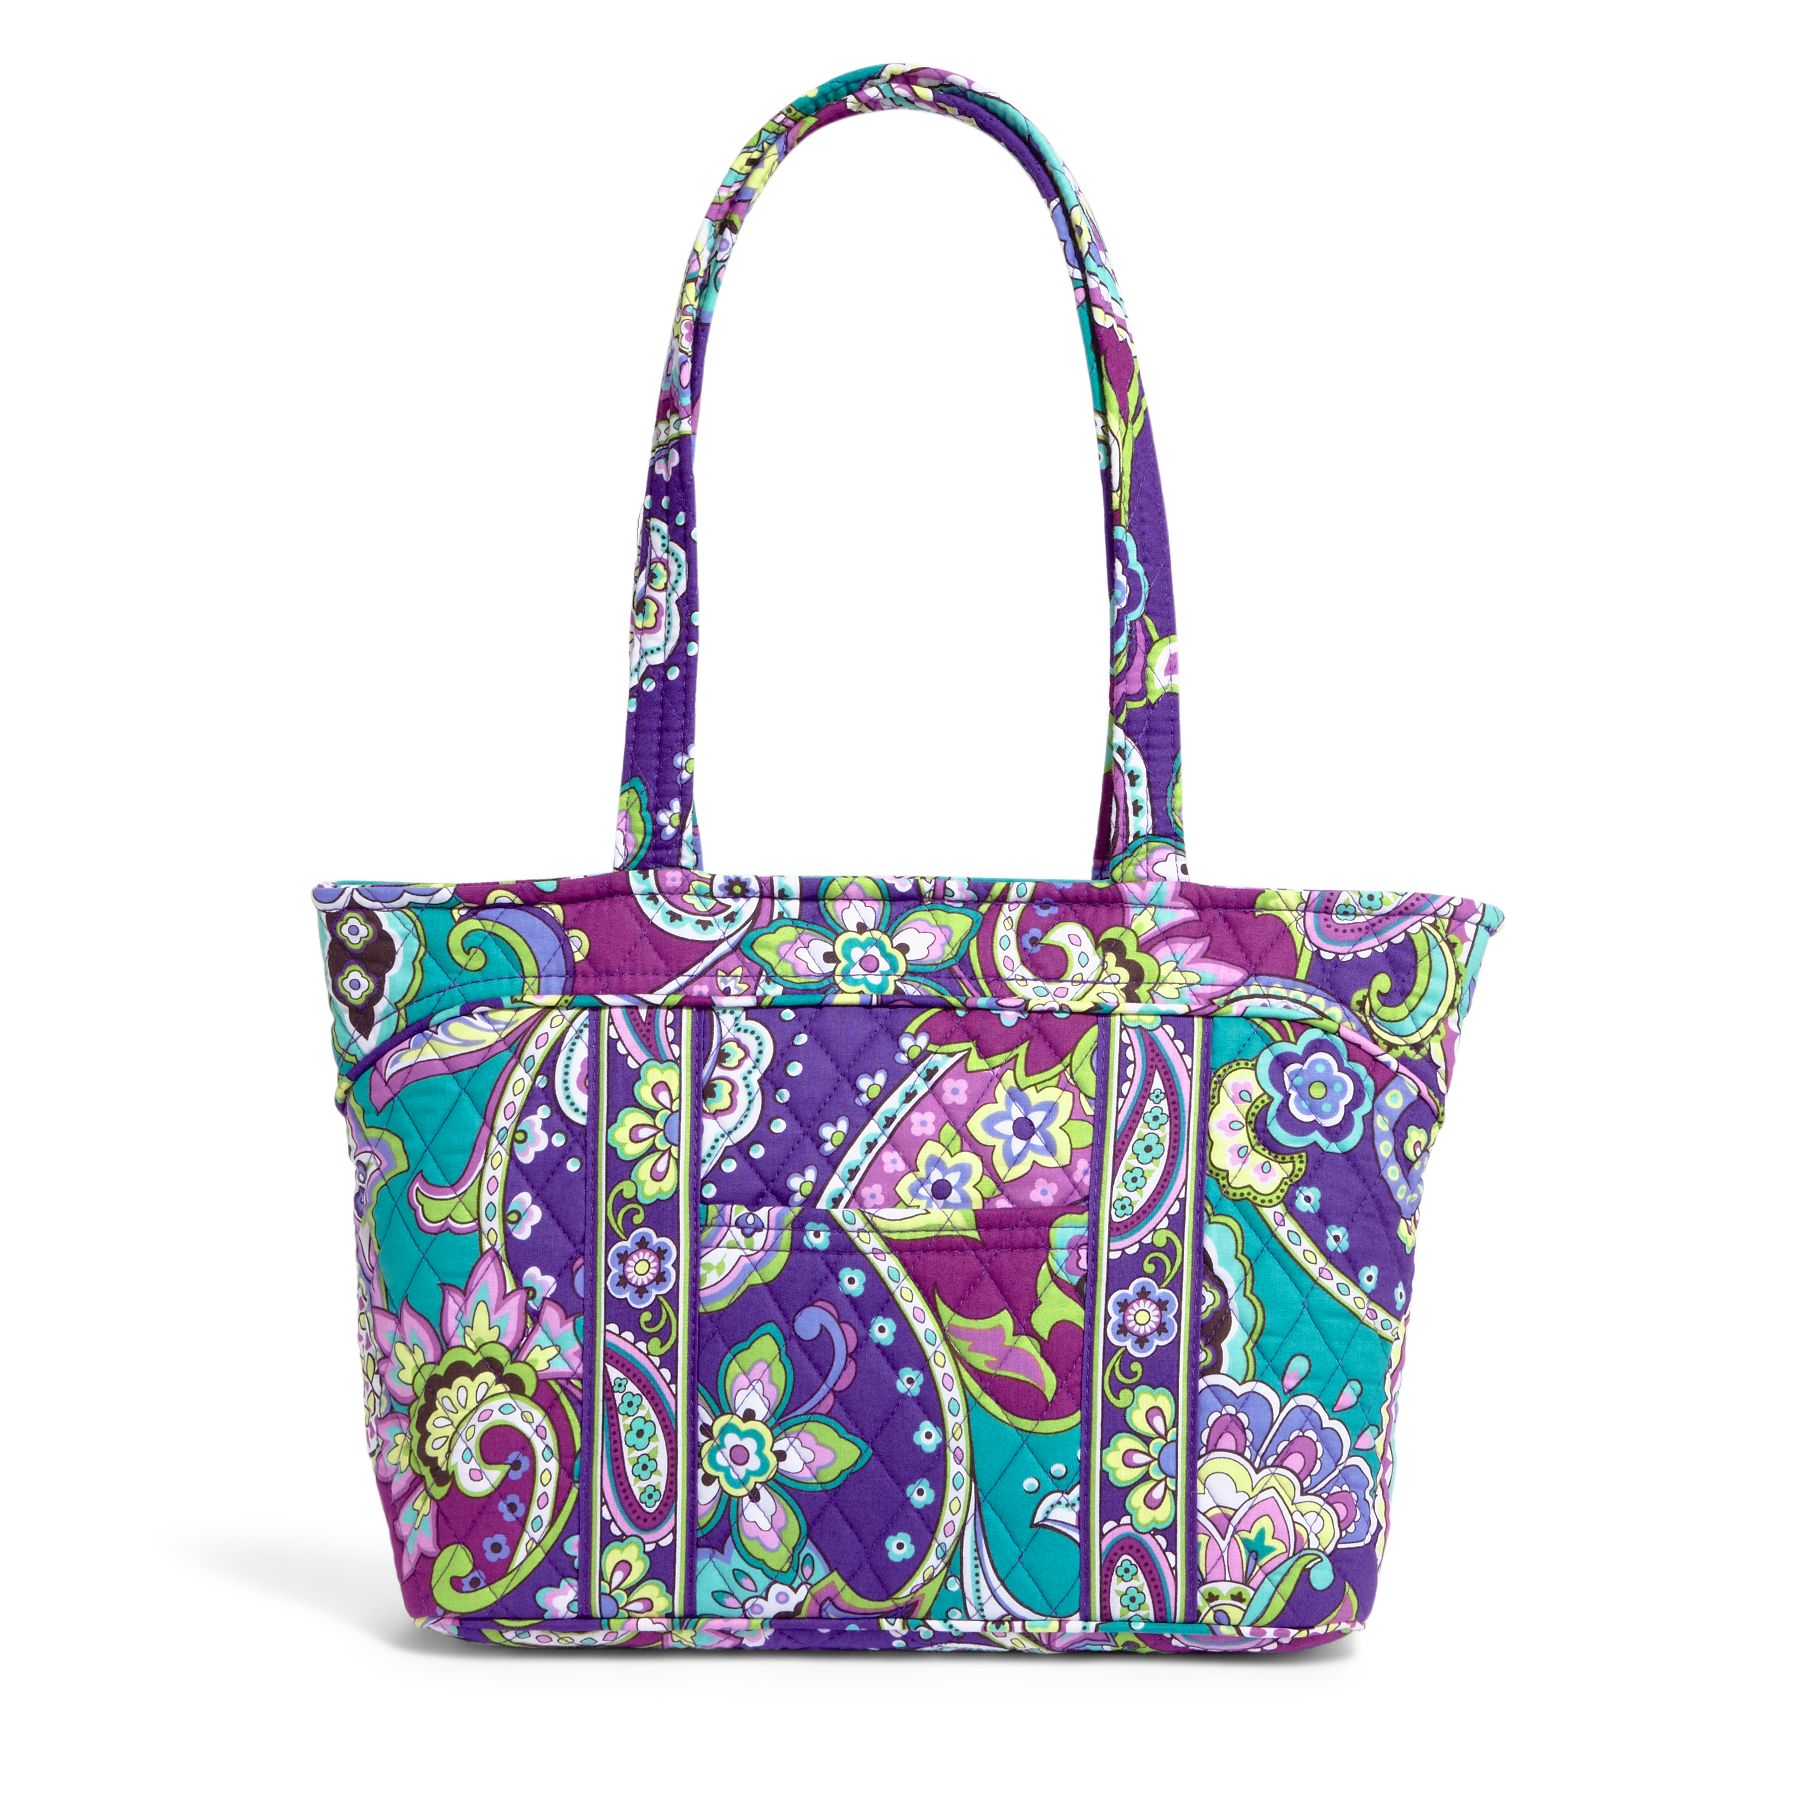 Vera Bradley Mandy Shoulder Bag in Heather